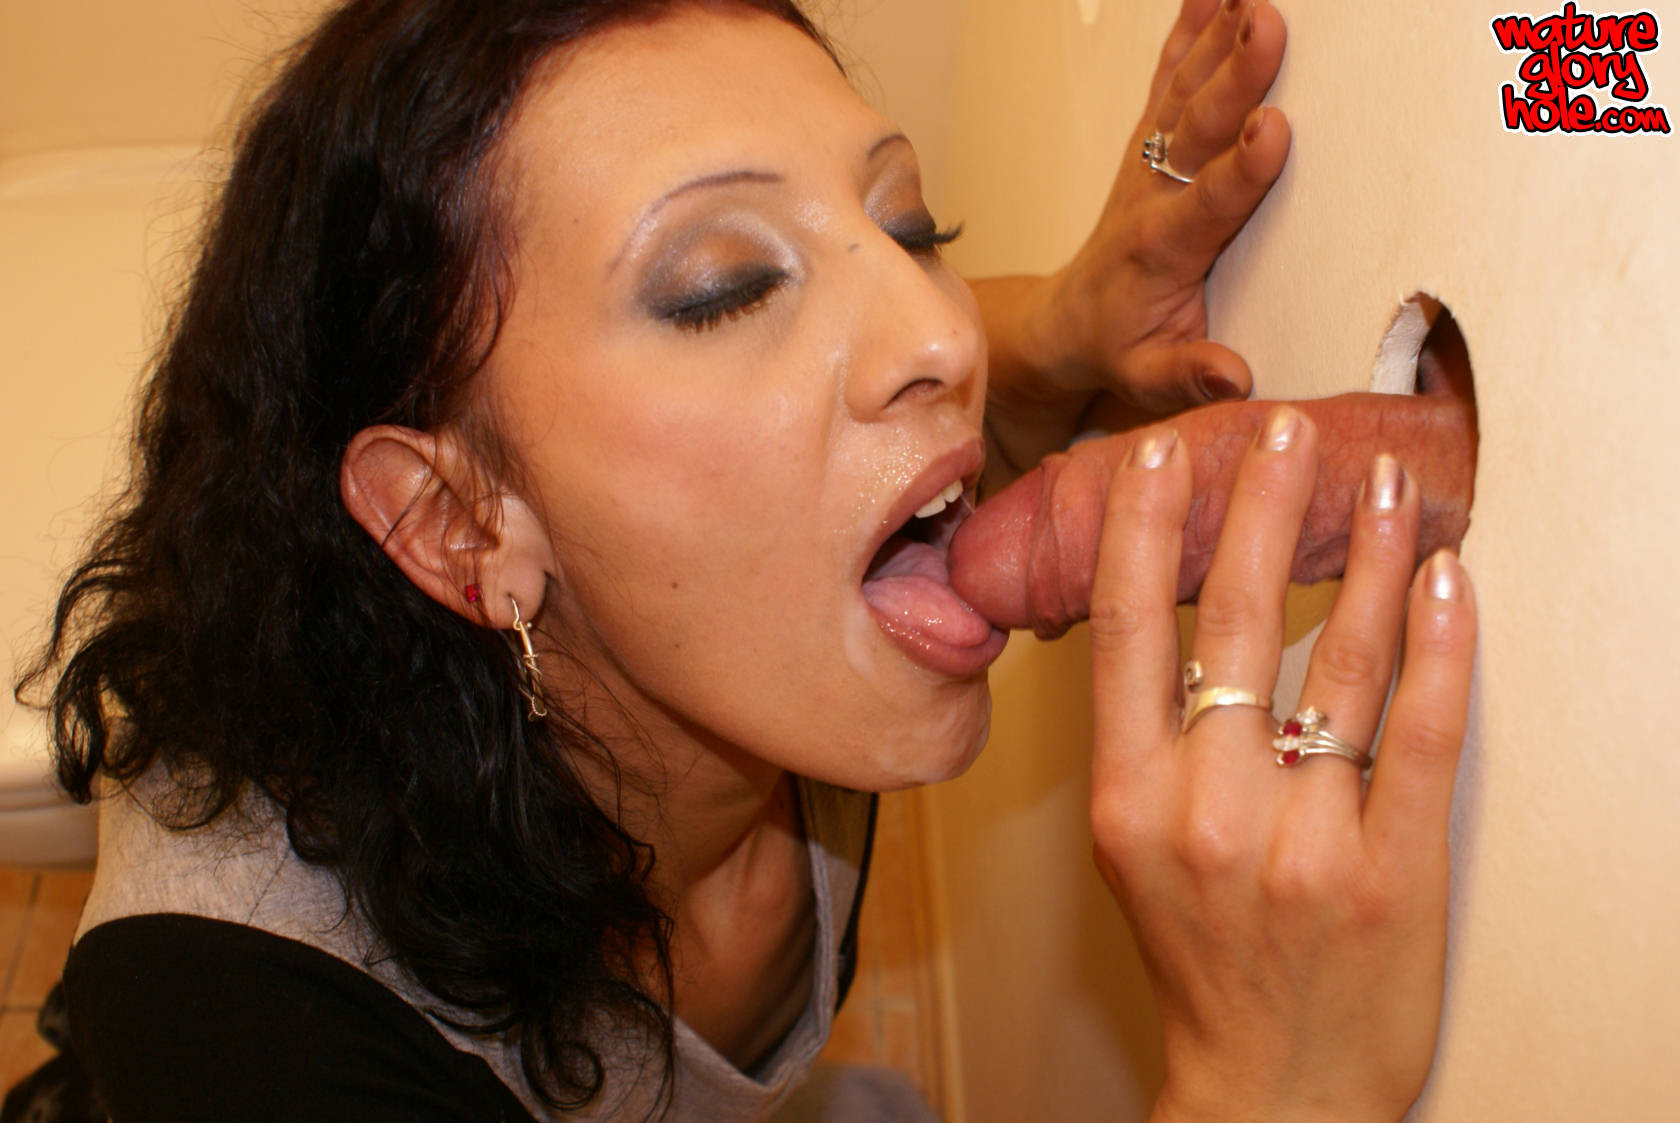 Gloryhole pics on hot